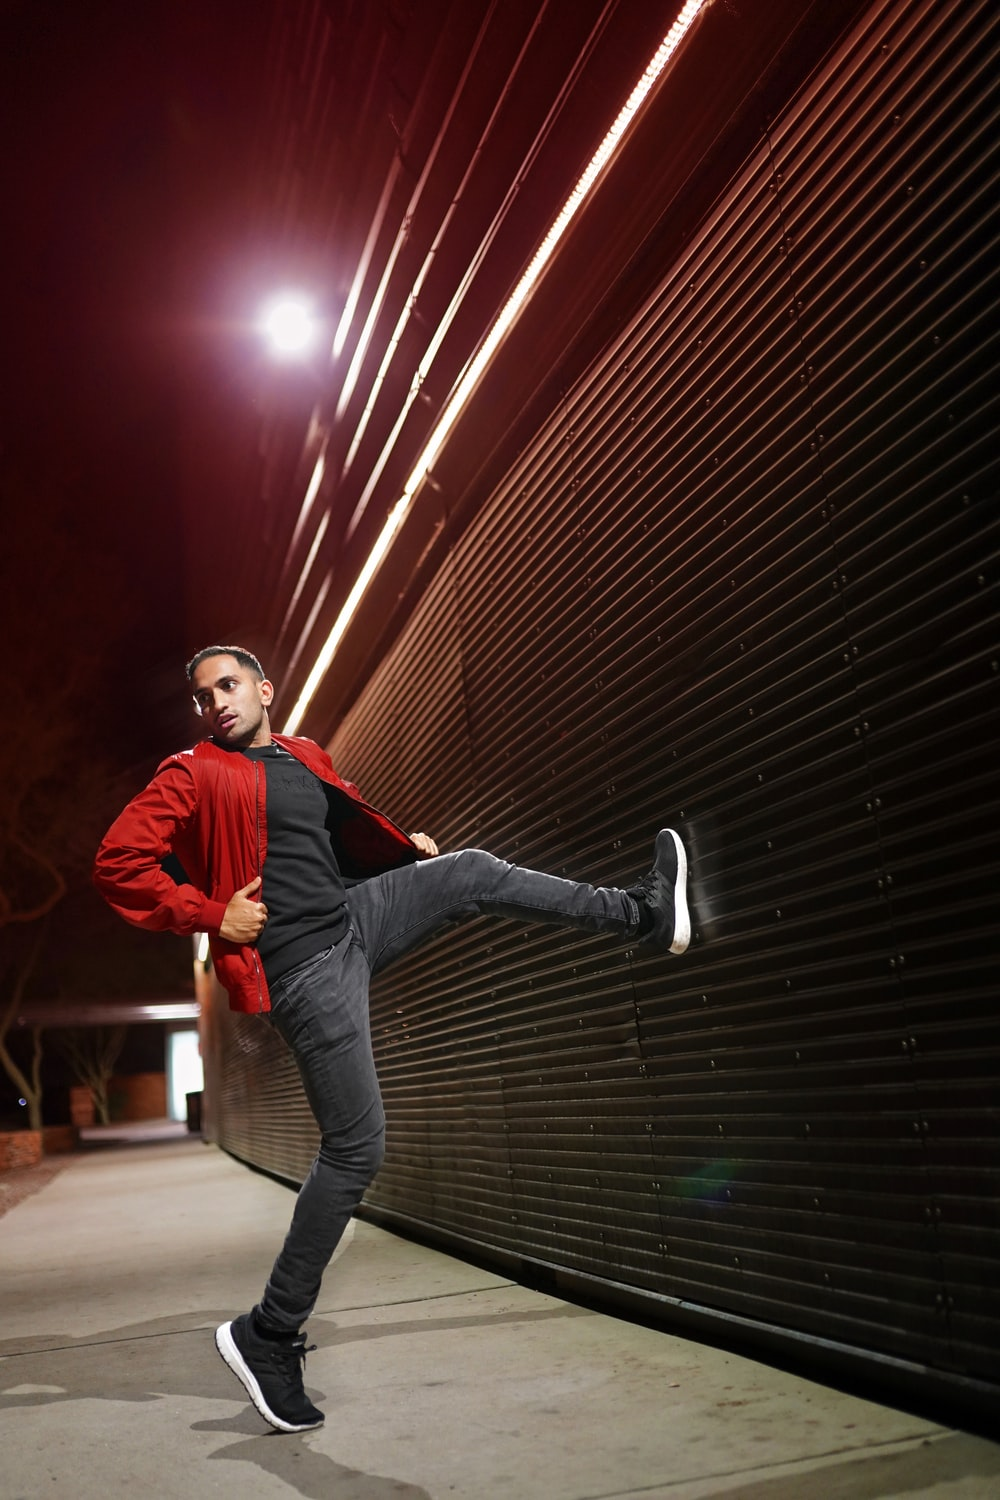 man in red jacket and gray denim jeans jumping